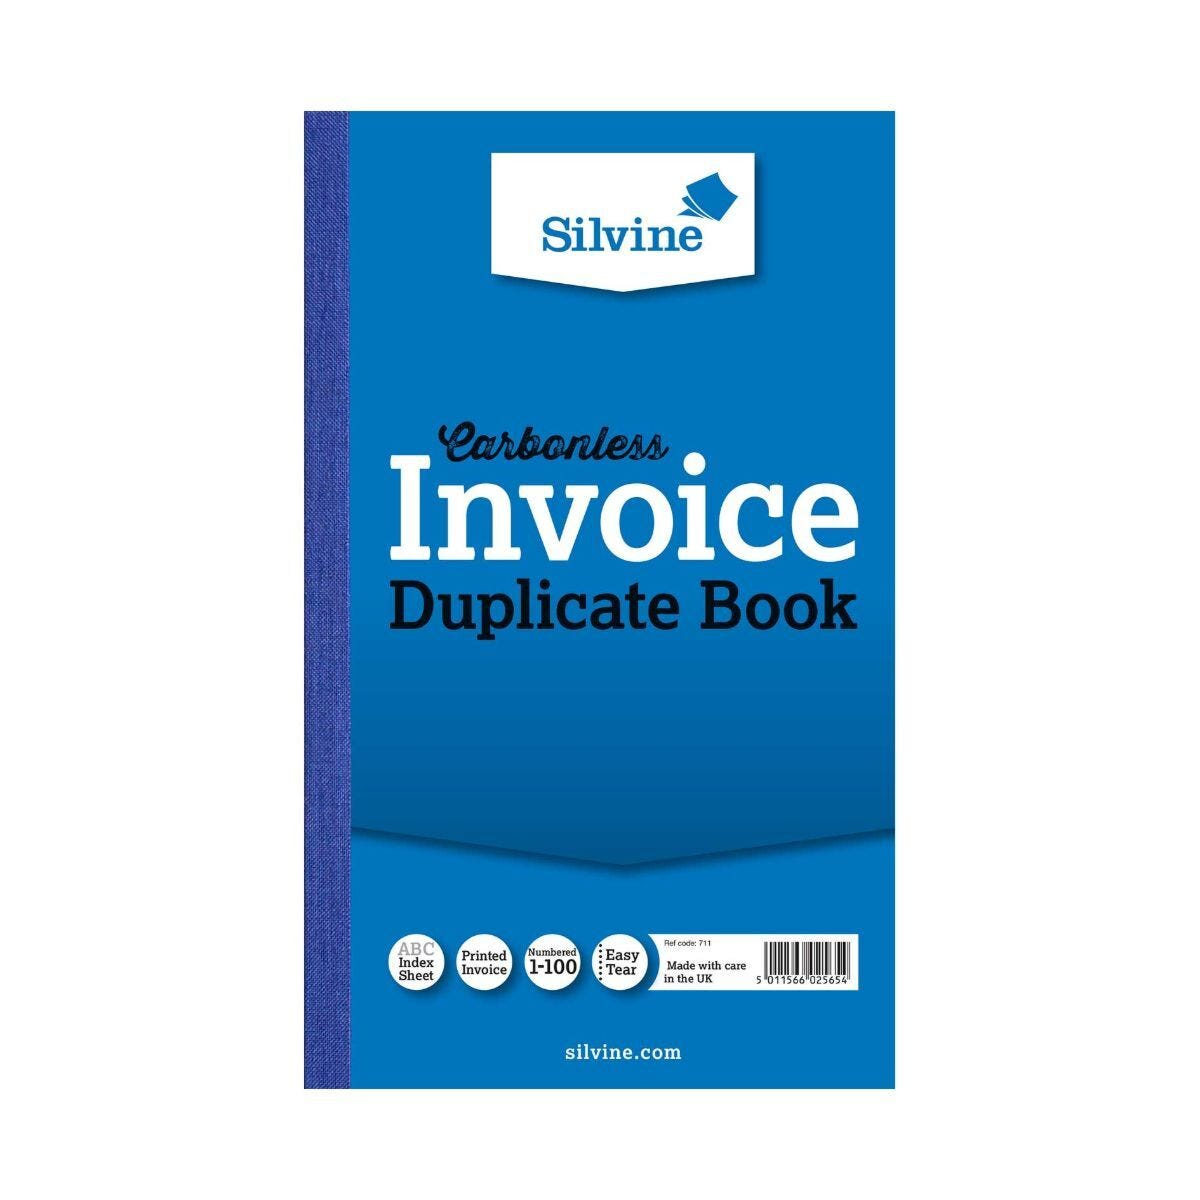 Silvine Duplicate Invoice Book Carbonless Numbered 1-100 100 Sheets